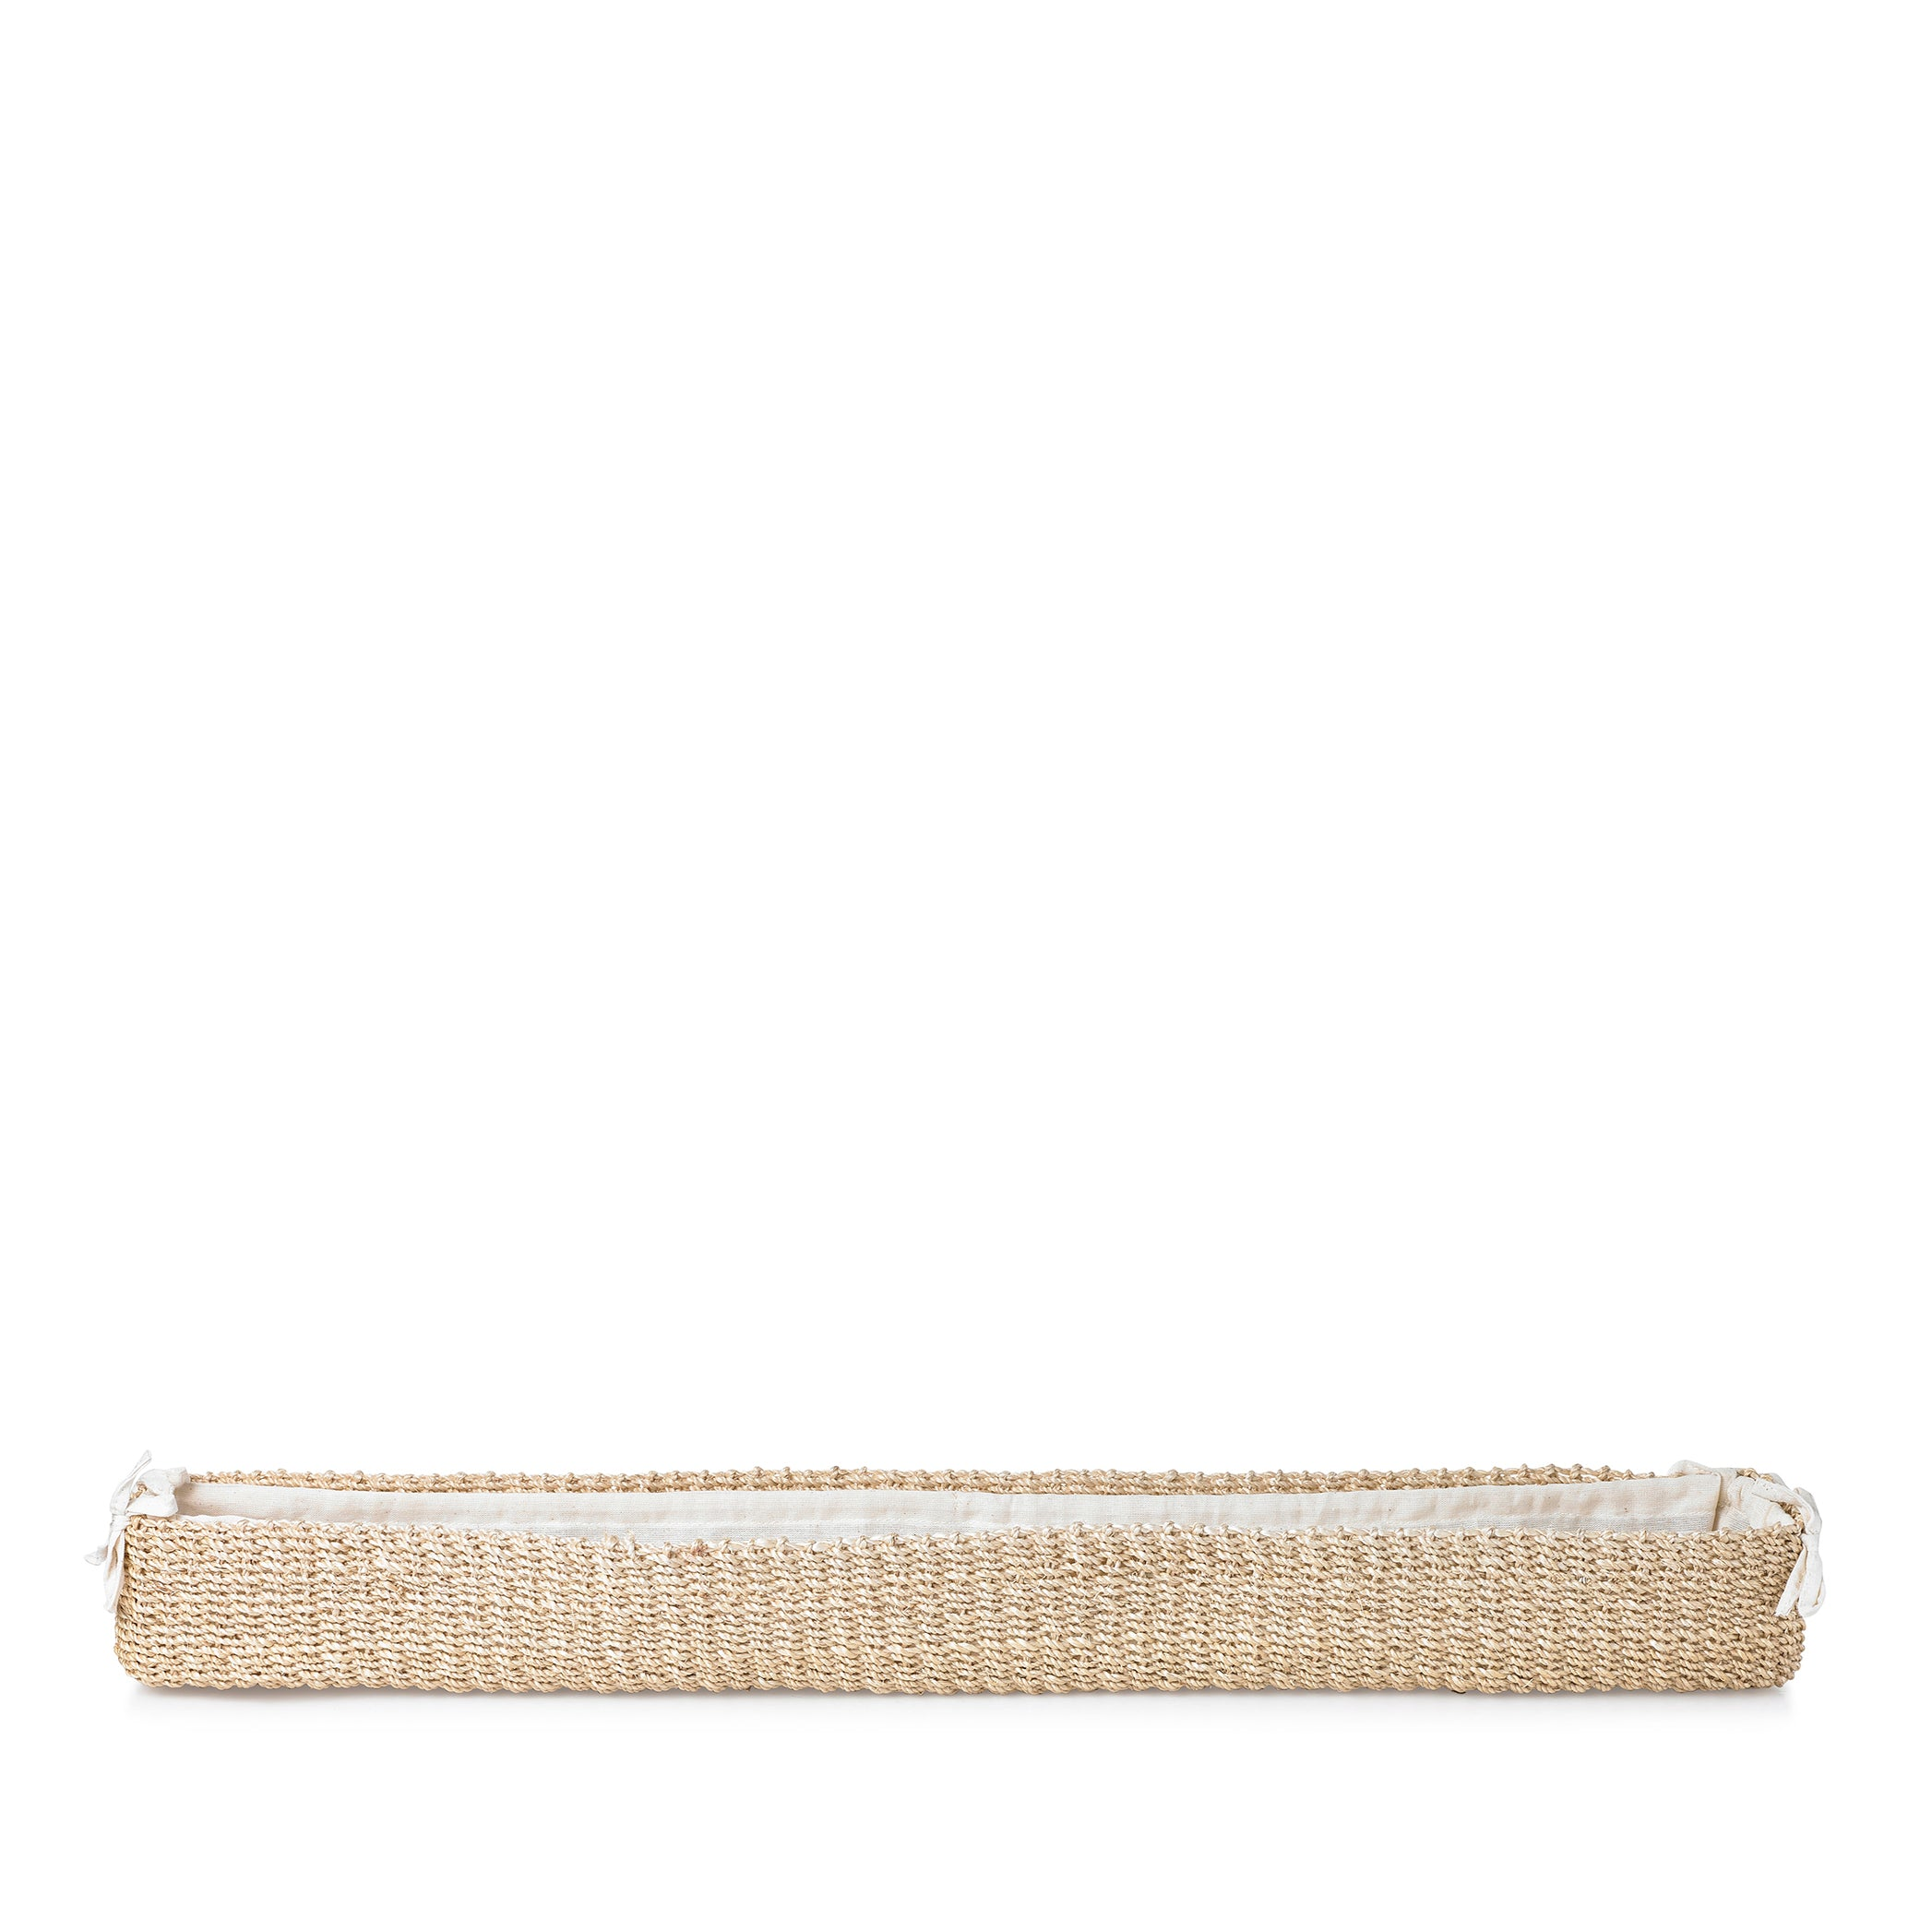 Abaca Woven Baguette Basket in Cream